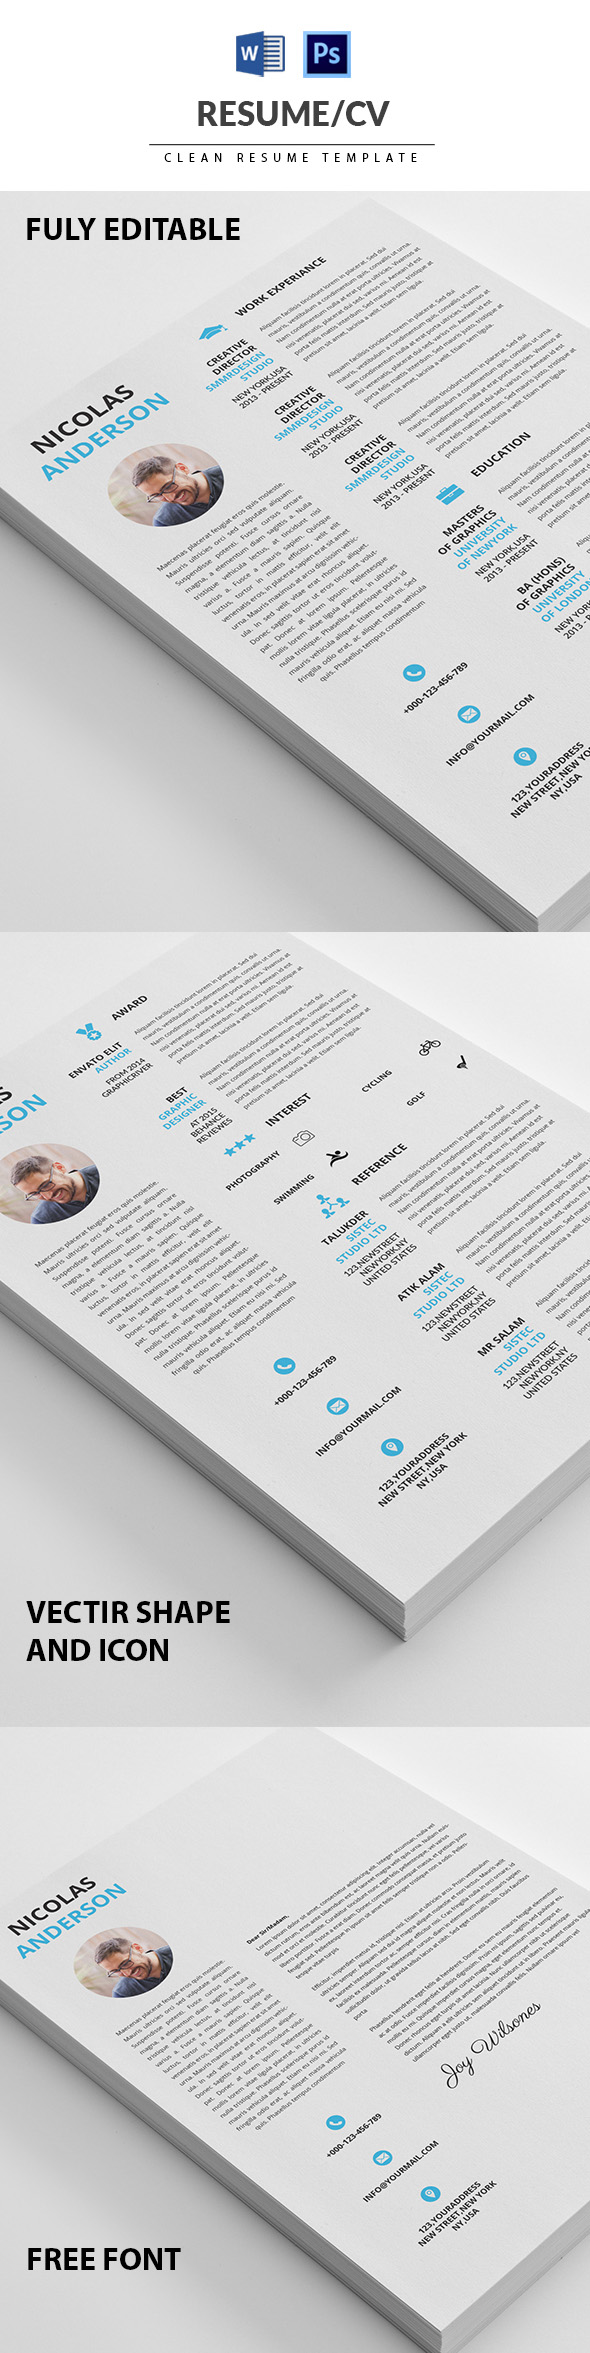 50 Best Resume Templates For 2018 - 44